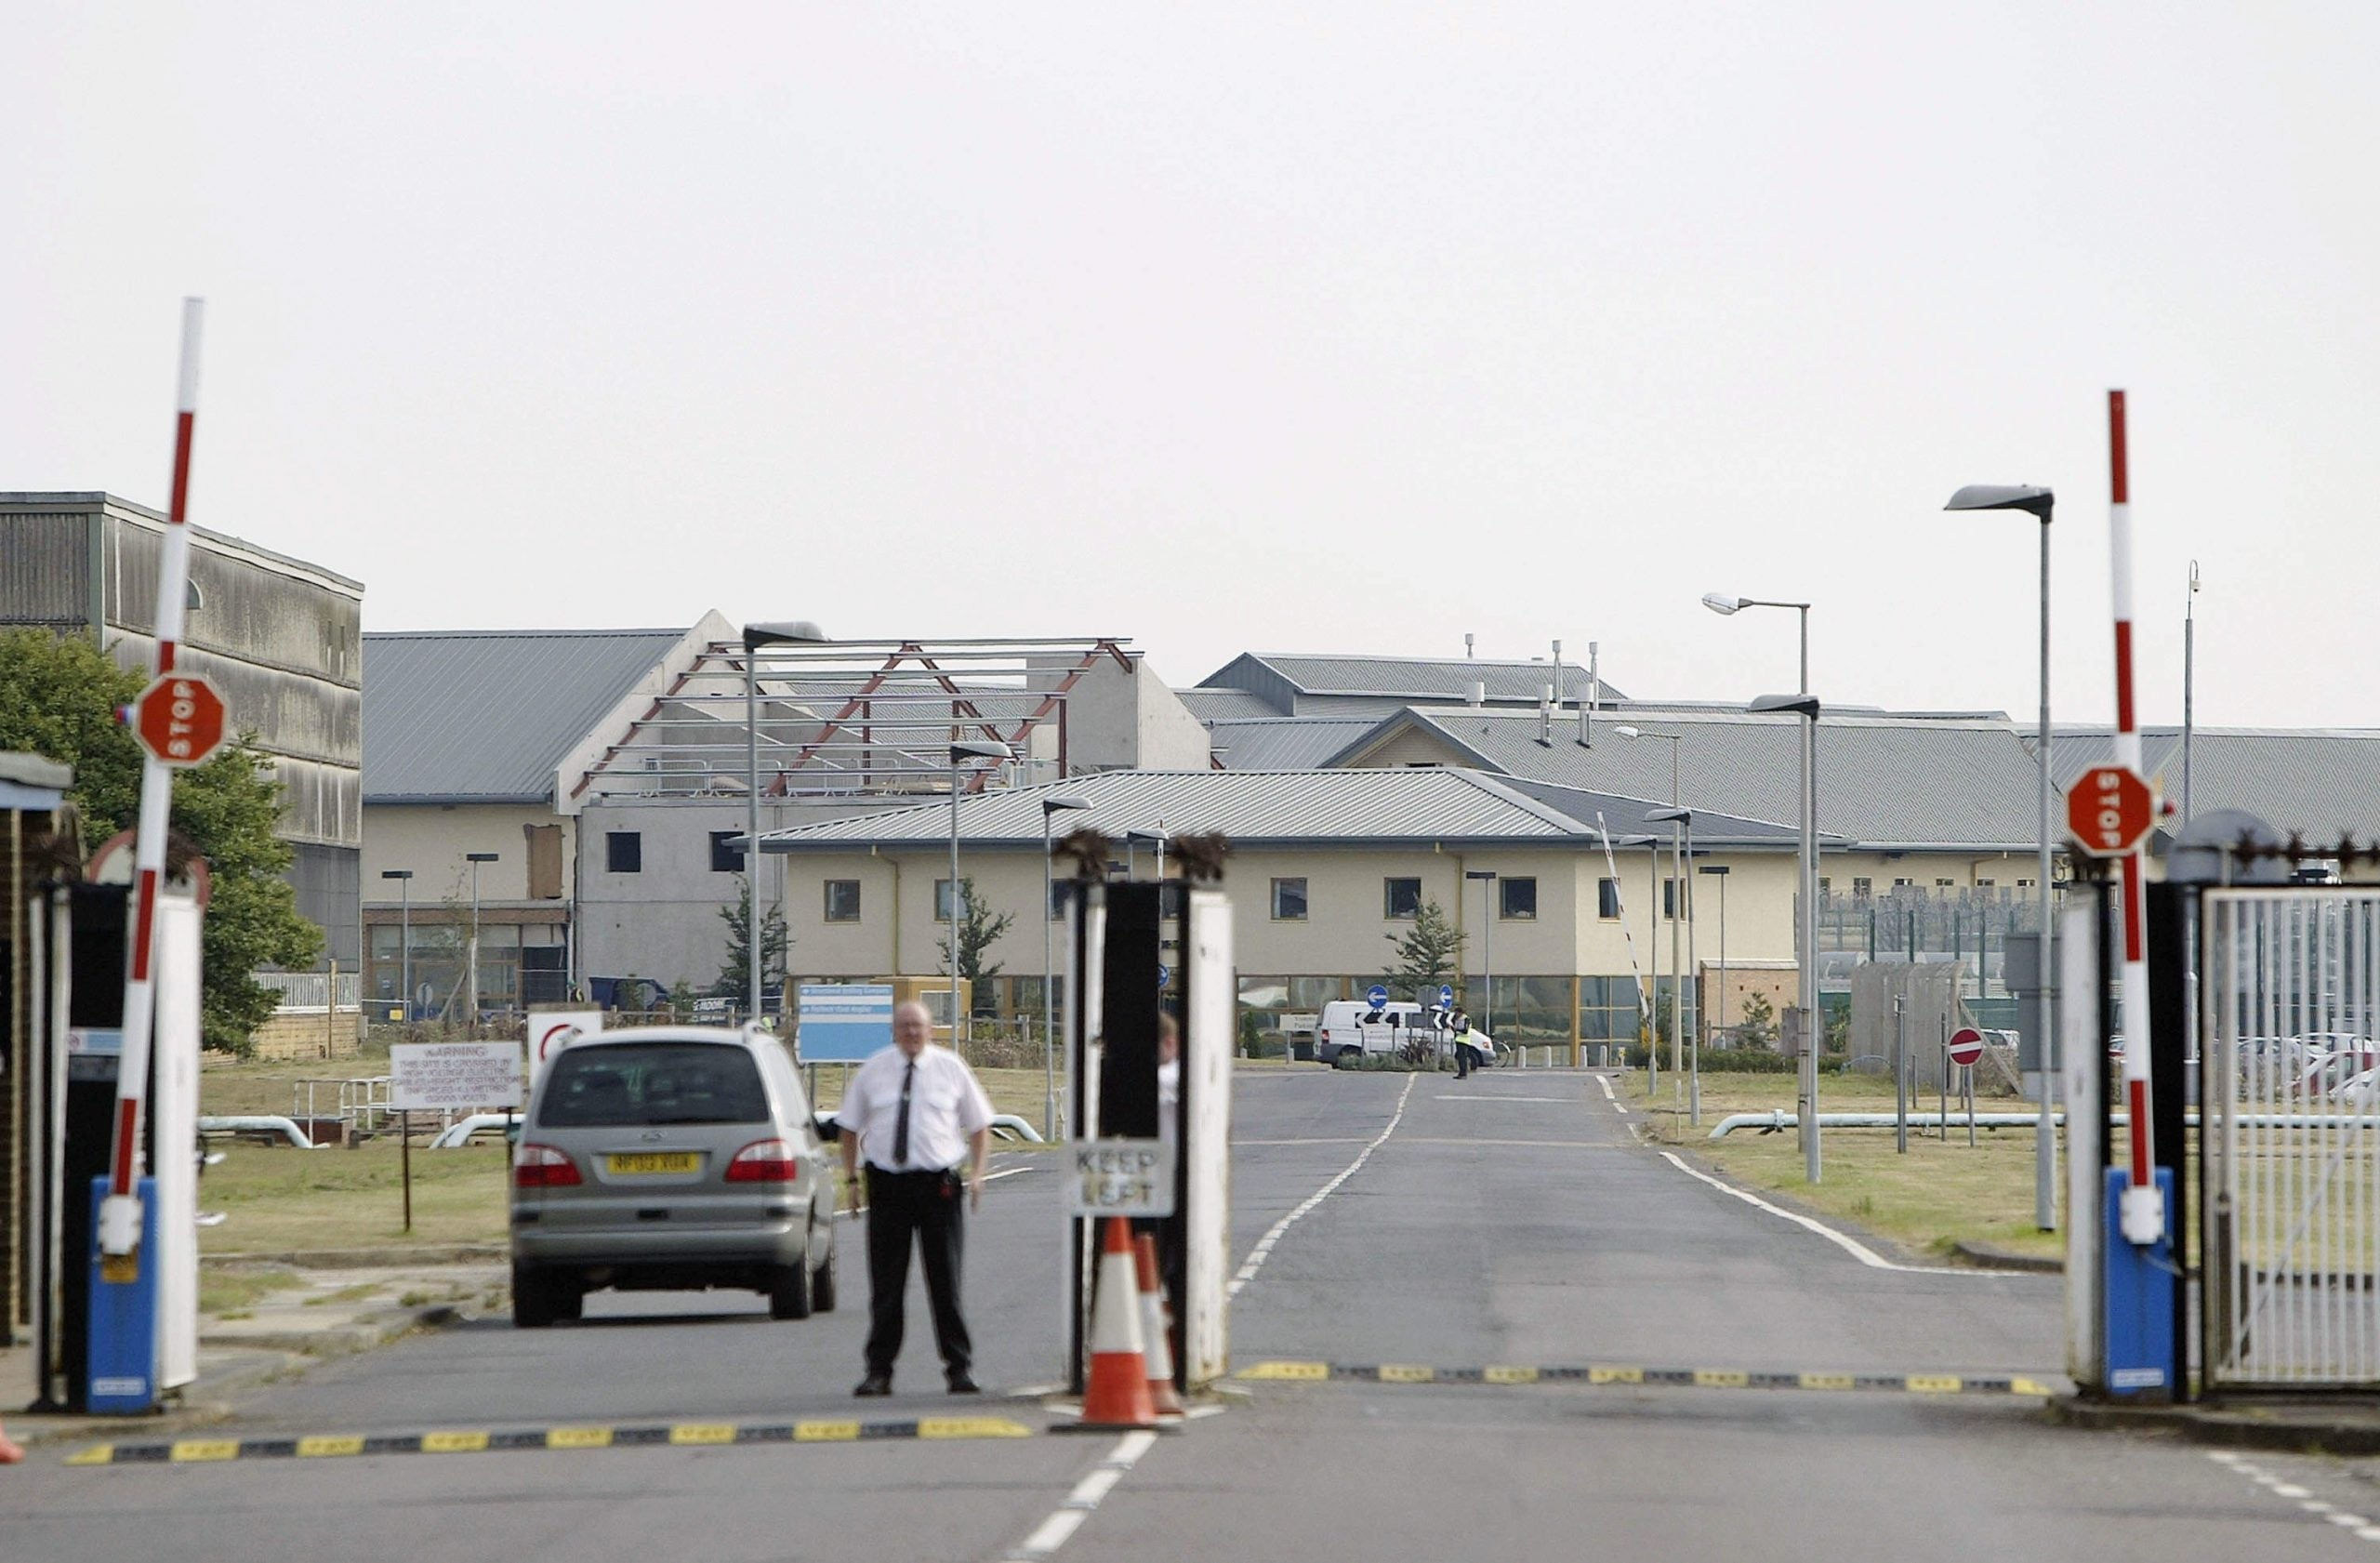 """Yarl's Wood immigration detention centre is of """"national concern"""", says prisons watchdog"""